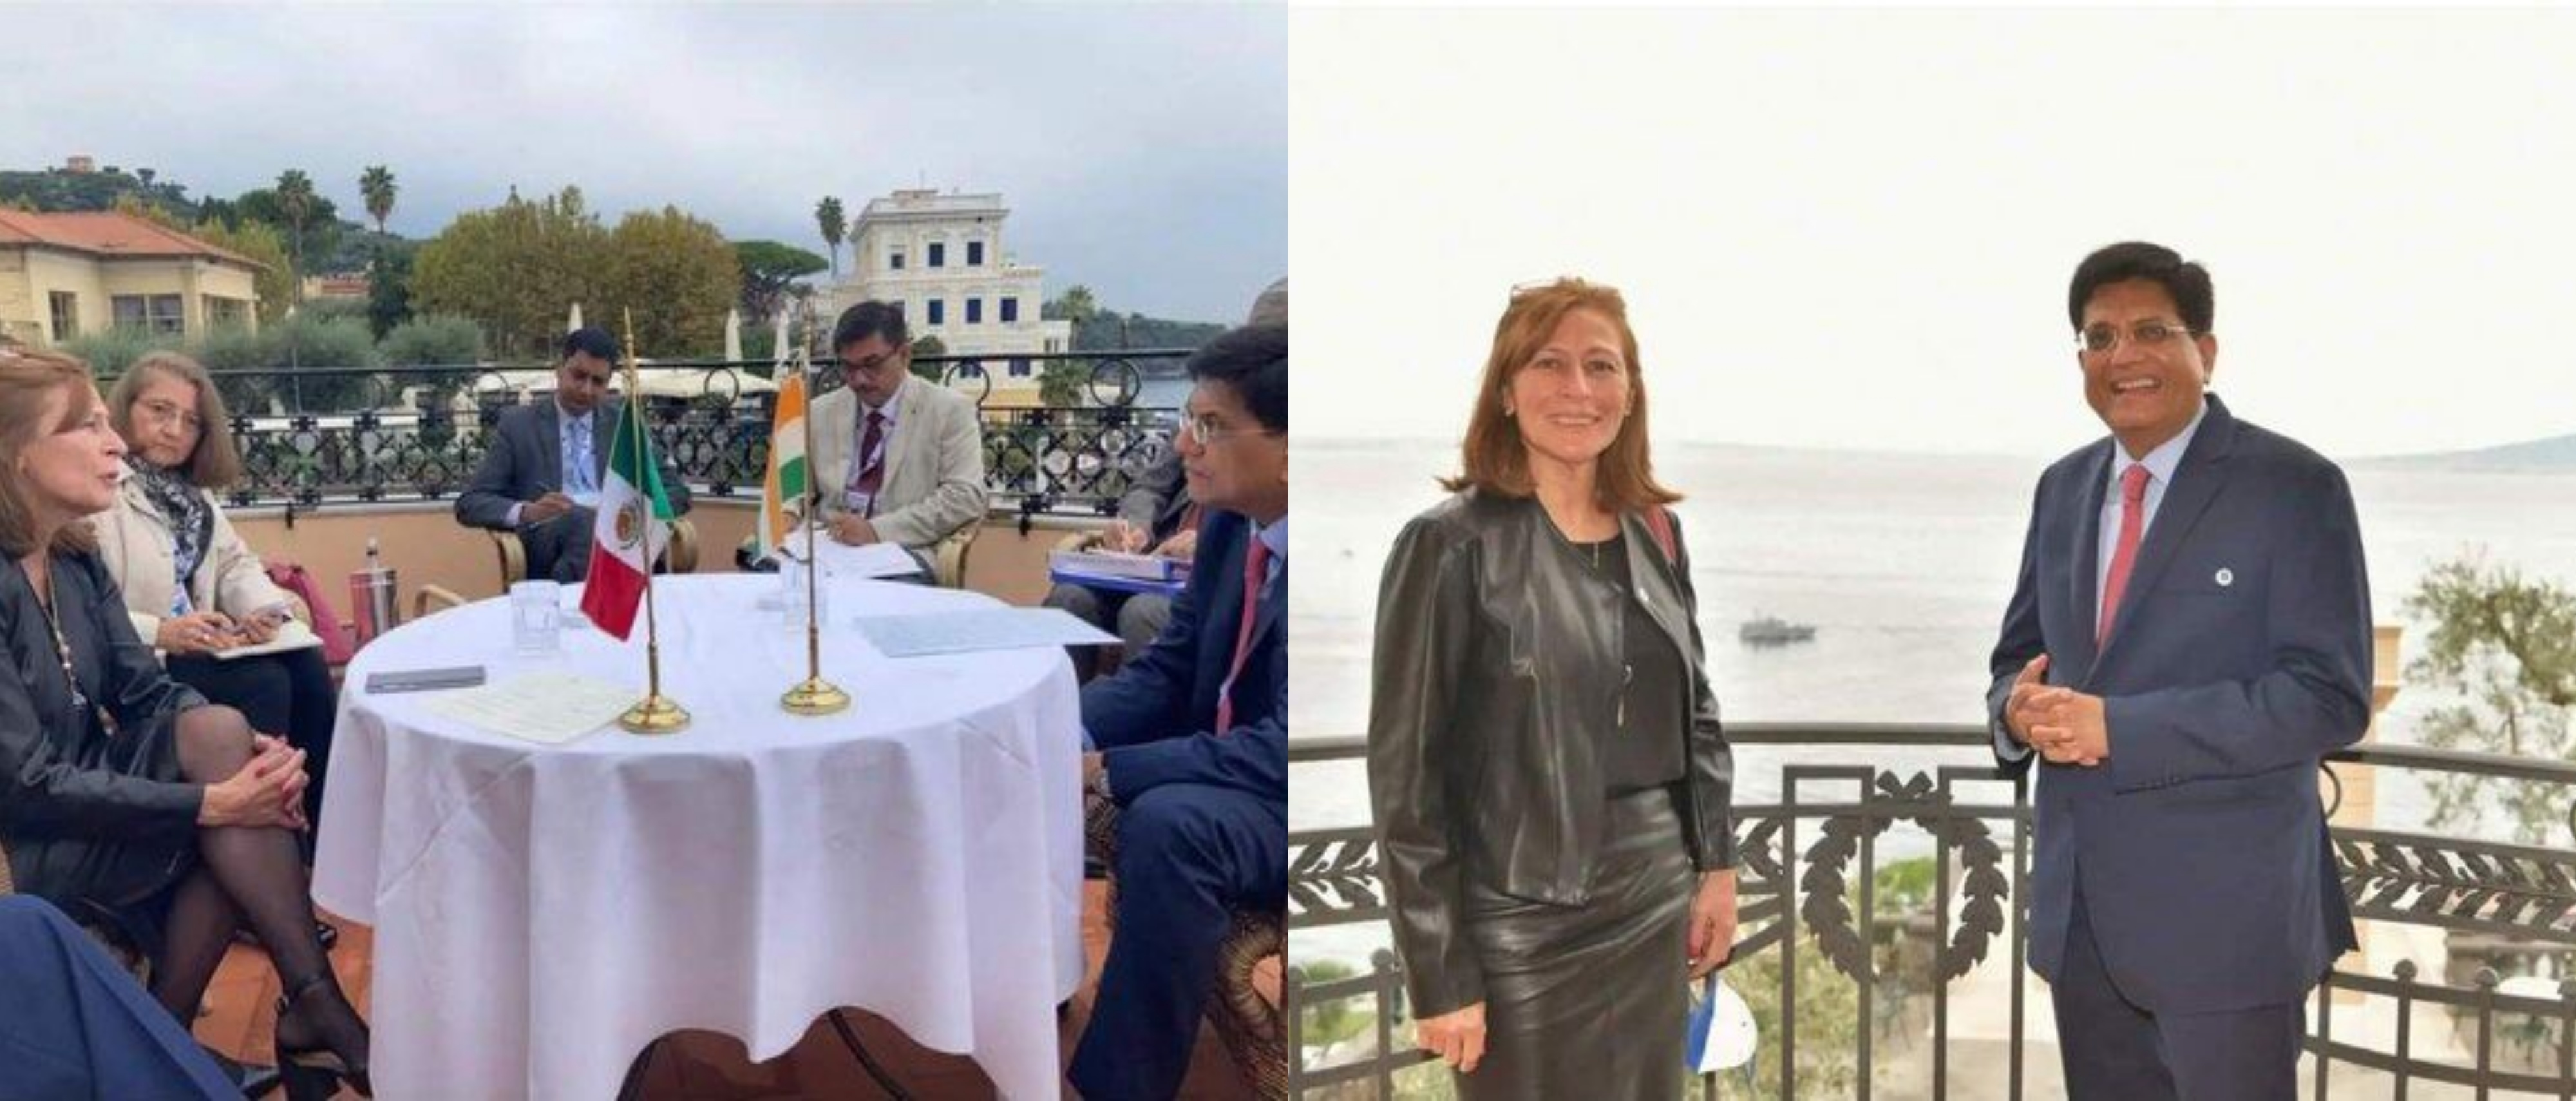 India's Minister of Commerce and Industry Shri. Piyush Goyal  met Mexico's Secretary of Economy Ms.Tatiana Clouthier  in Italy before the G20 Trade Minister's Meeting on 11th October 2021